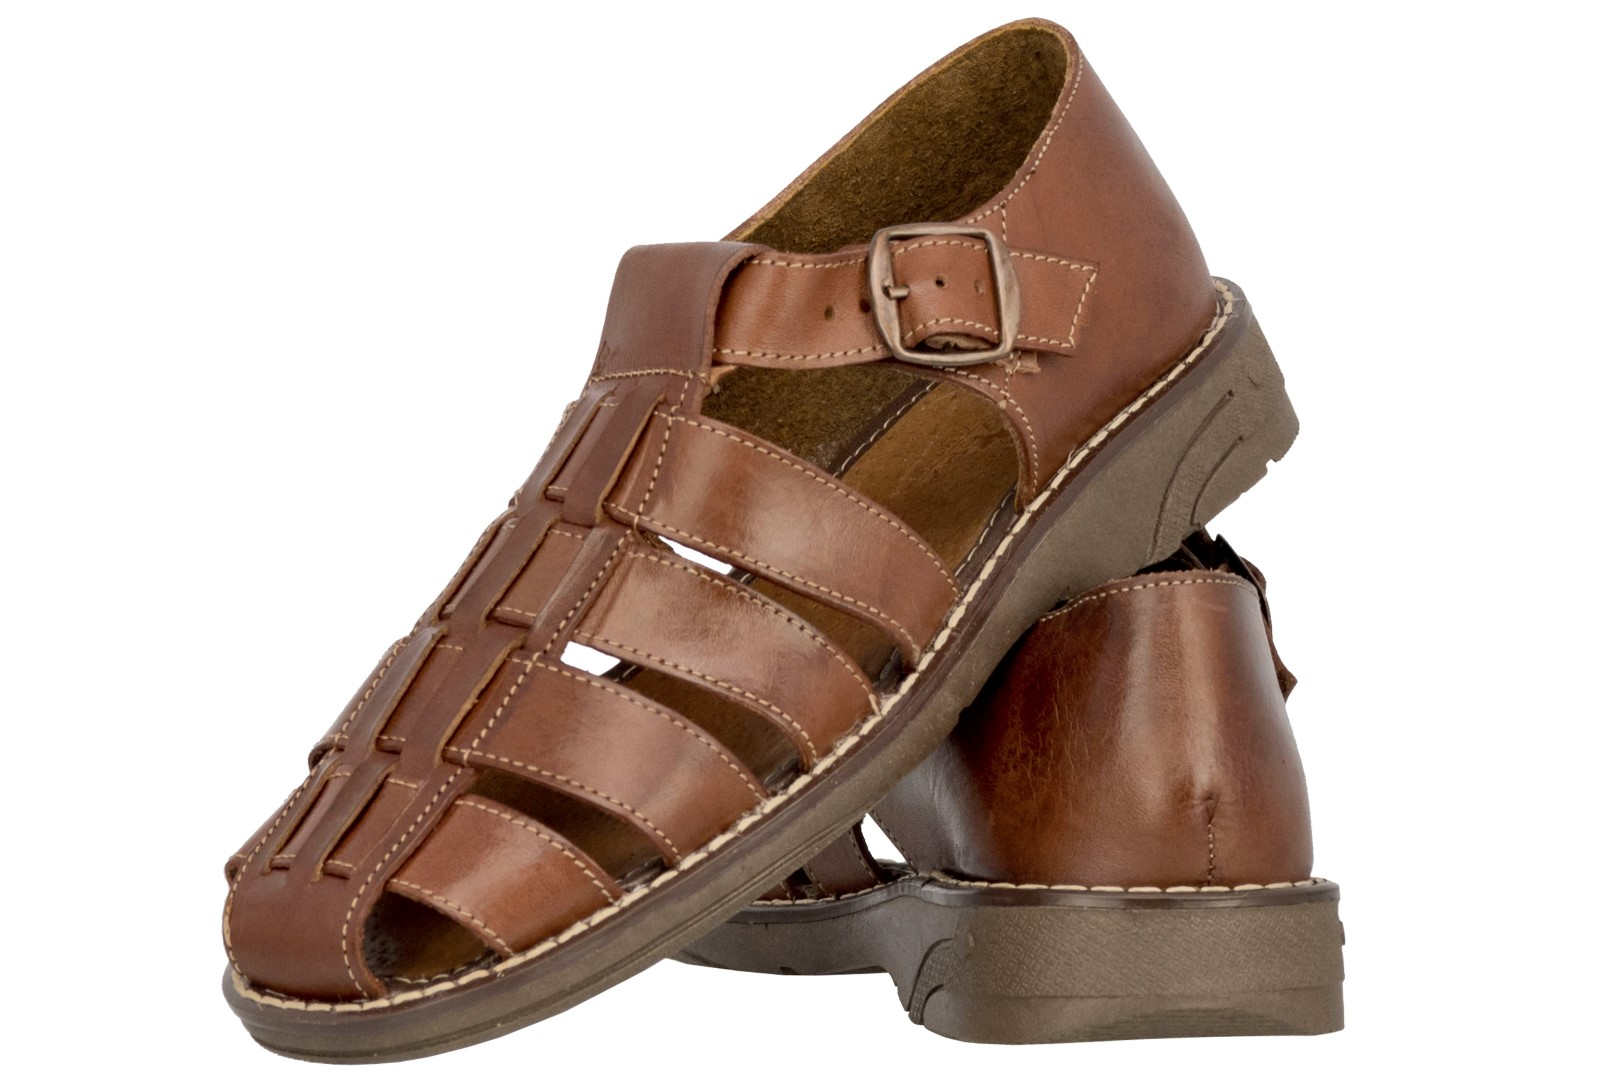 e85132f8dd9fe Mens Genuine Cognac Brown Leather Mexican Huaraches Buckle Sandals ...